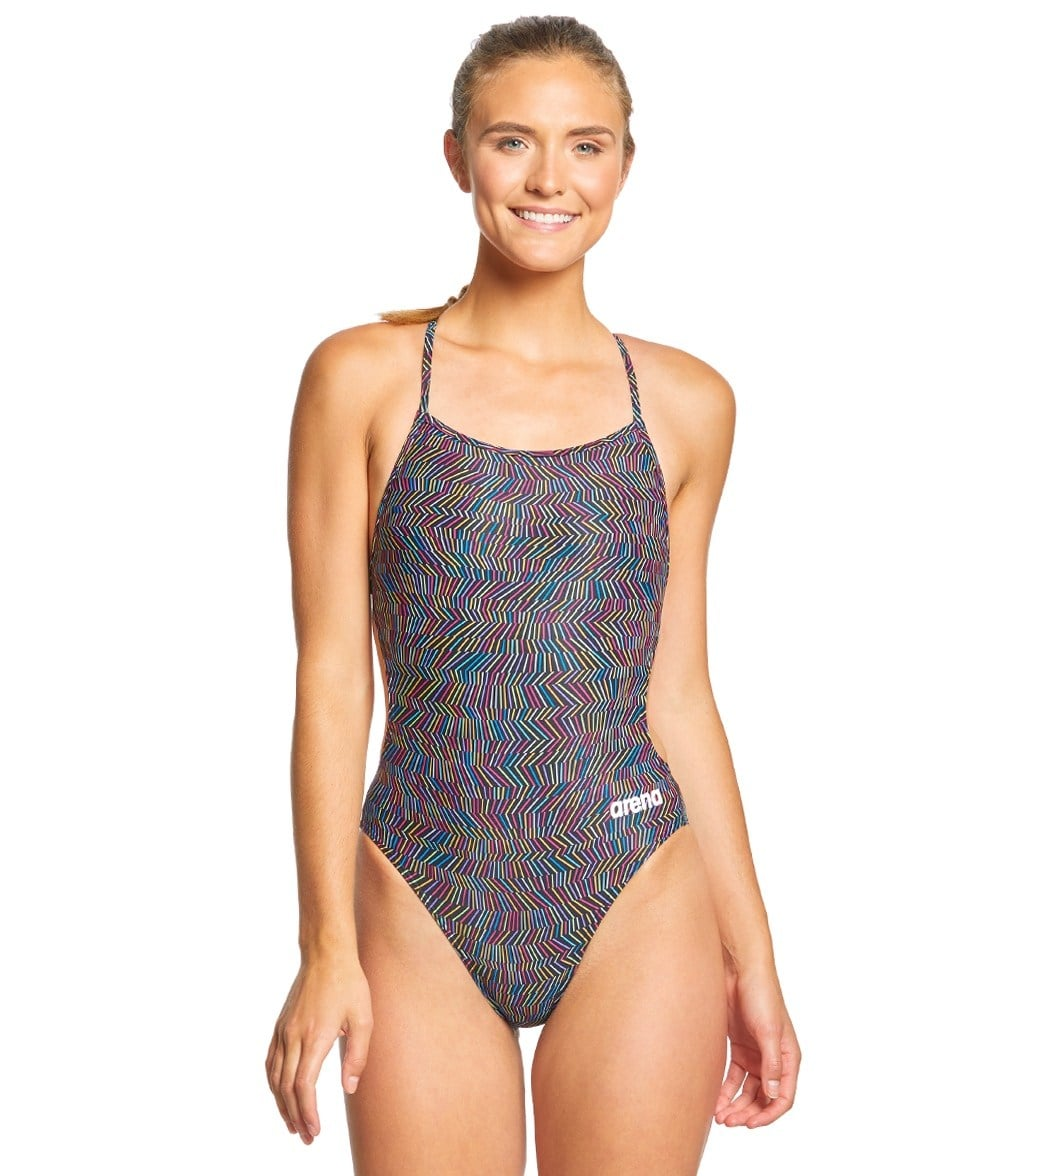 37d8ee1db81de Arena Women's Angles MaxLife Booster Back One Piece Swimsuit at  SwimOutlet.com - Free Shipping